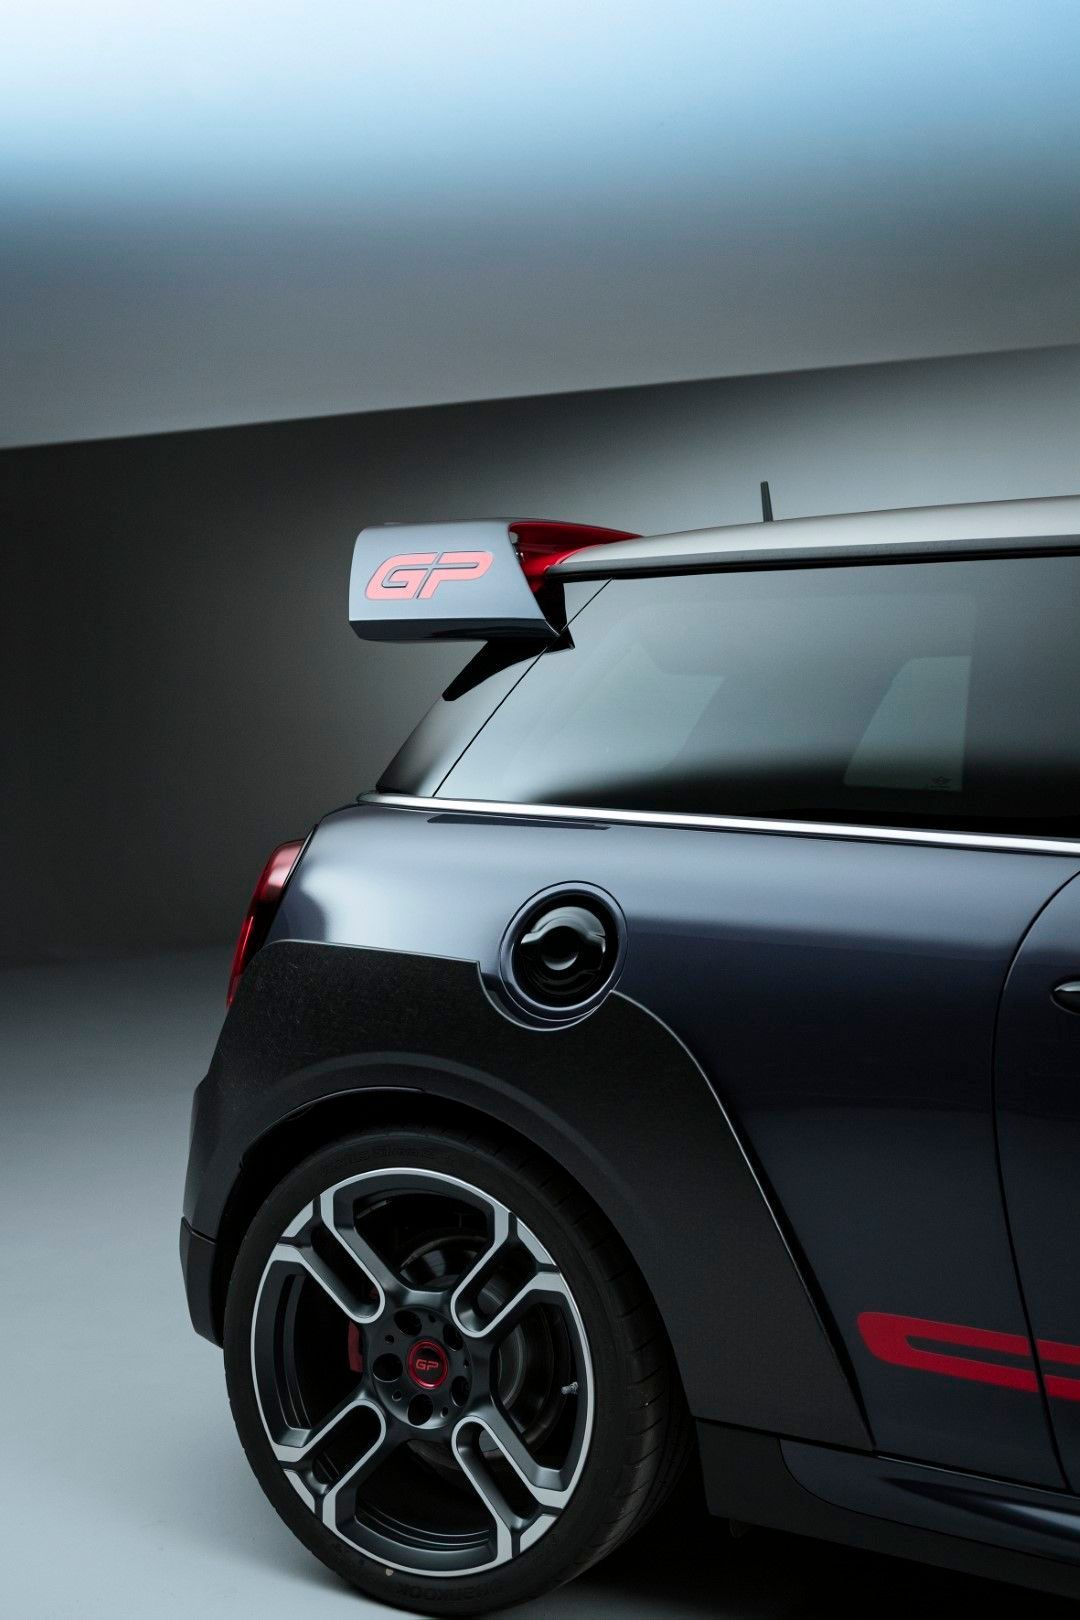 2020 MINI John Cooper Works GP. Limited production to 3000